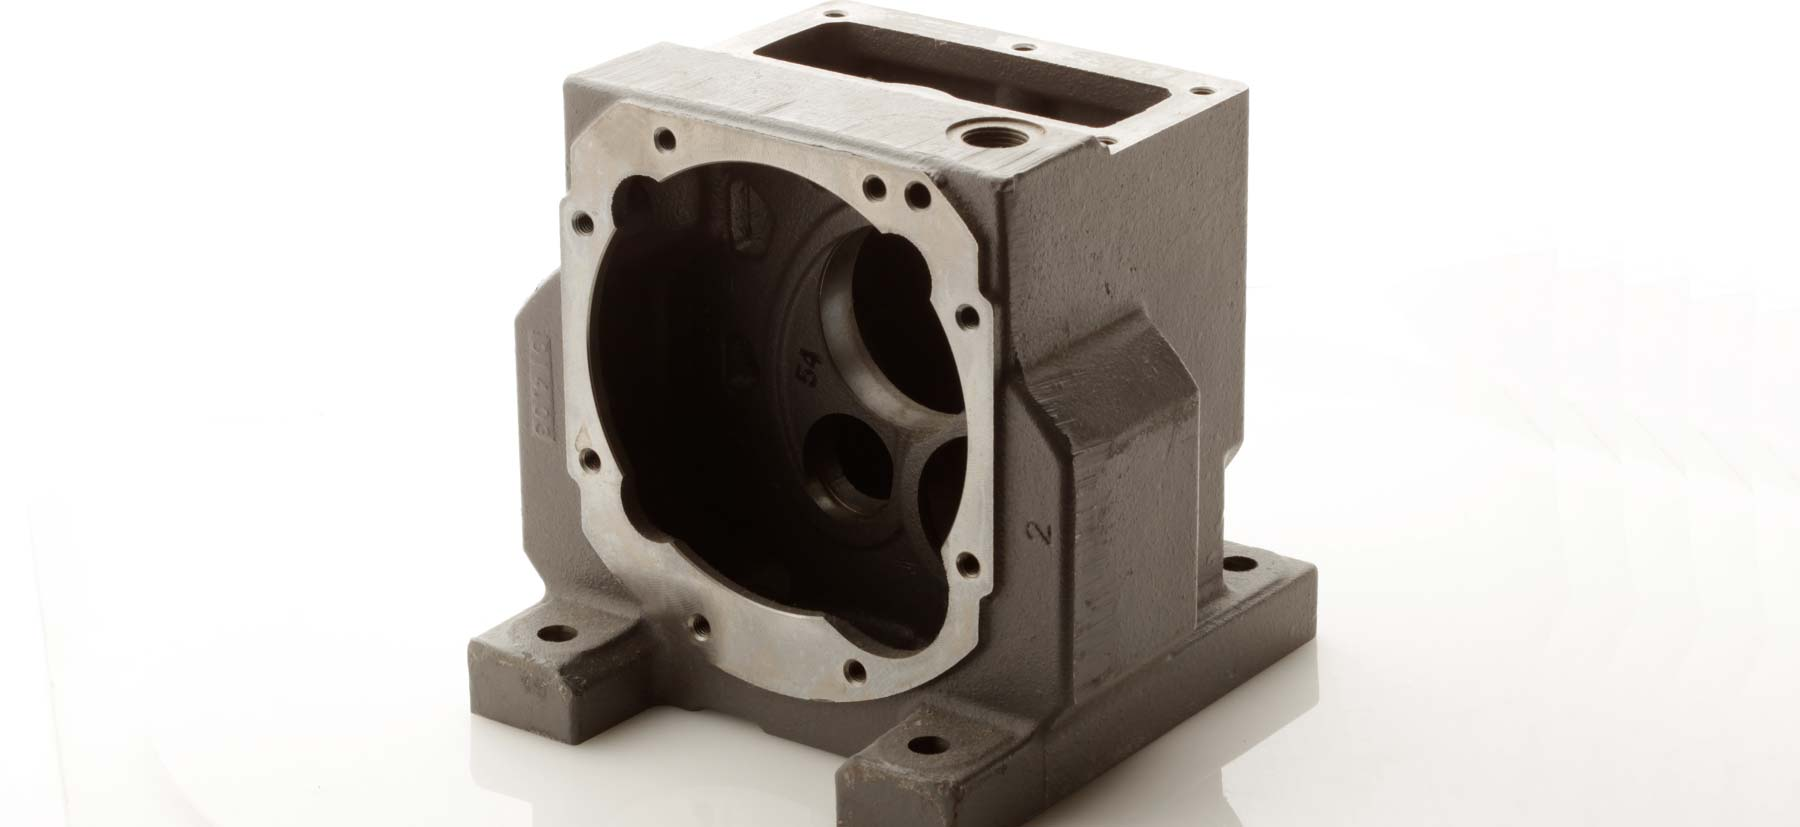 Machined Castings manufacturer